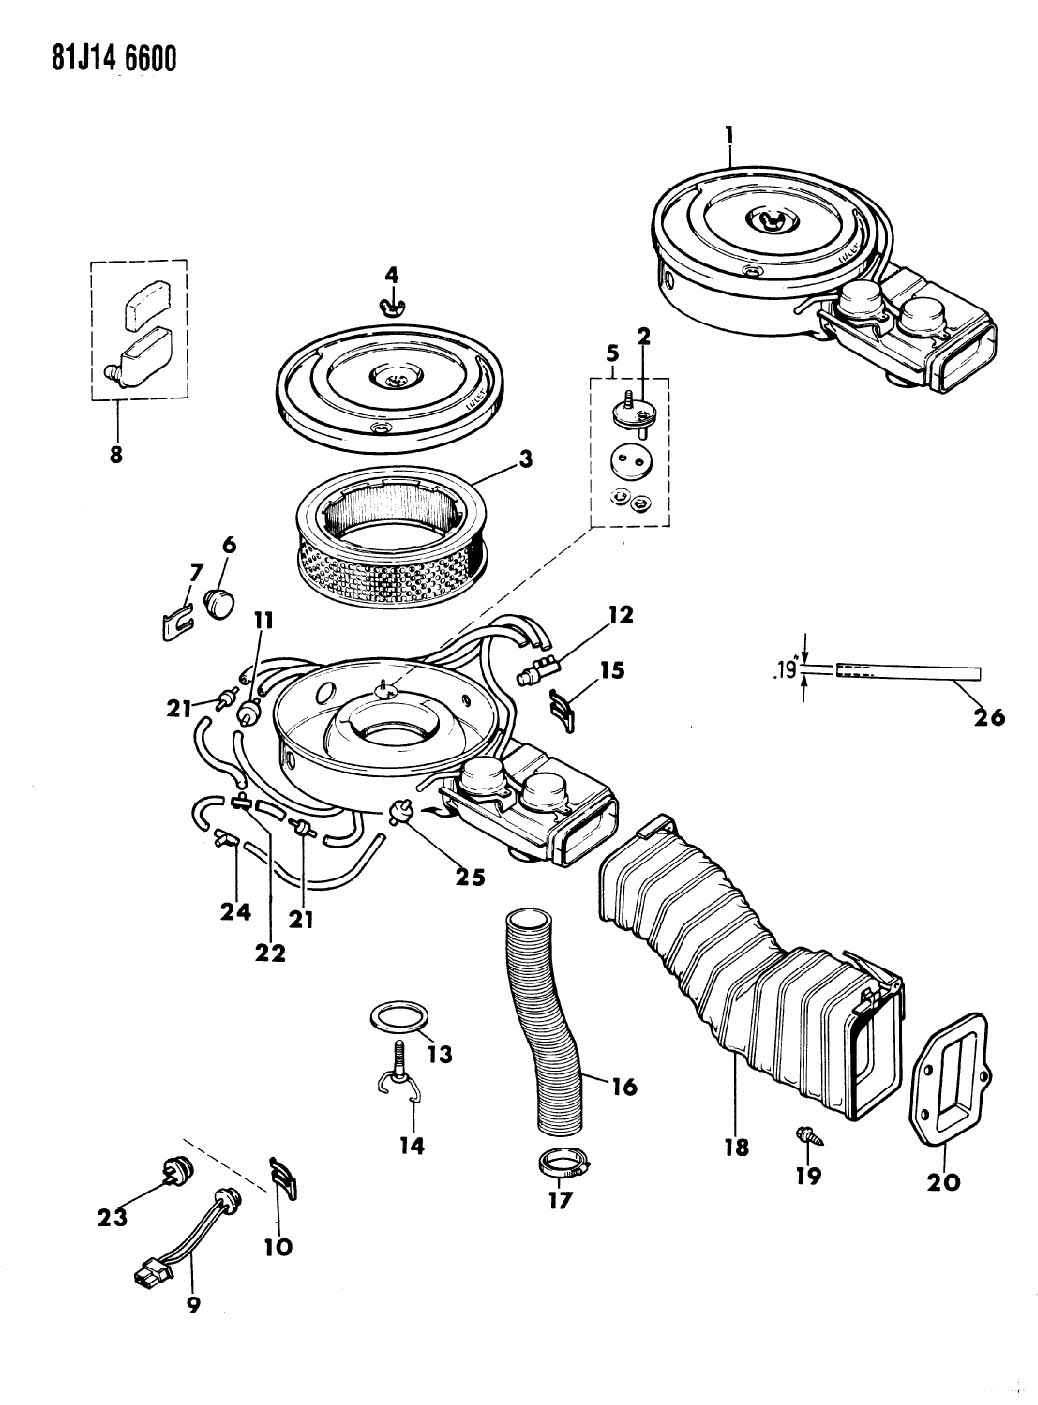 j3210891 tee washer hose connector  hose carbureted jeep cj wiper switch wiring diagram